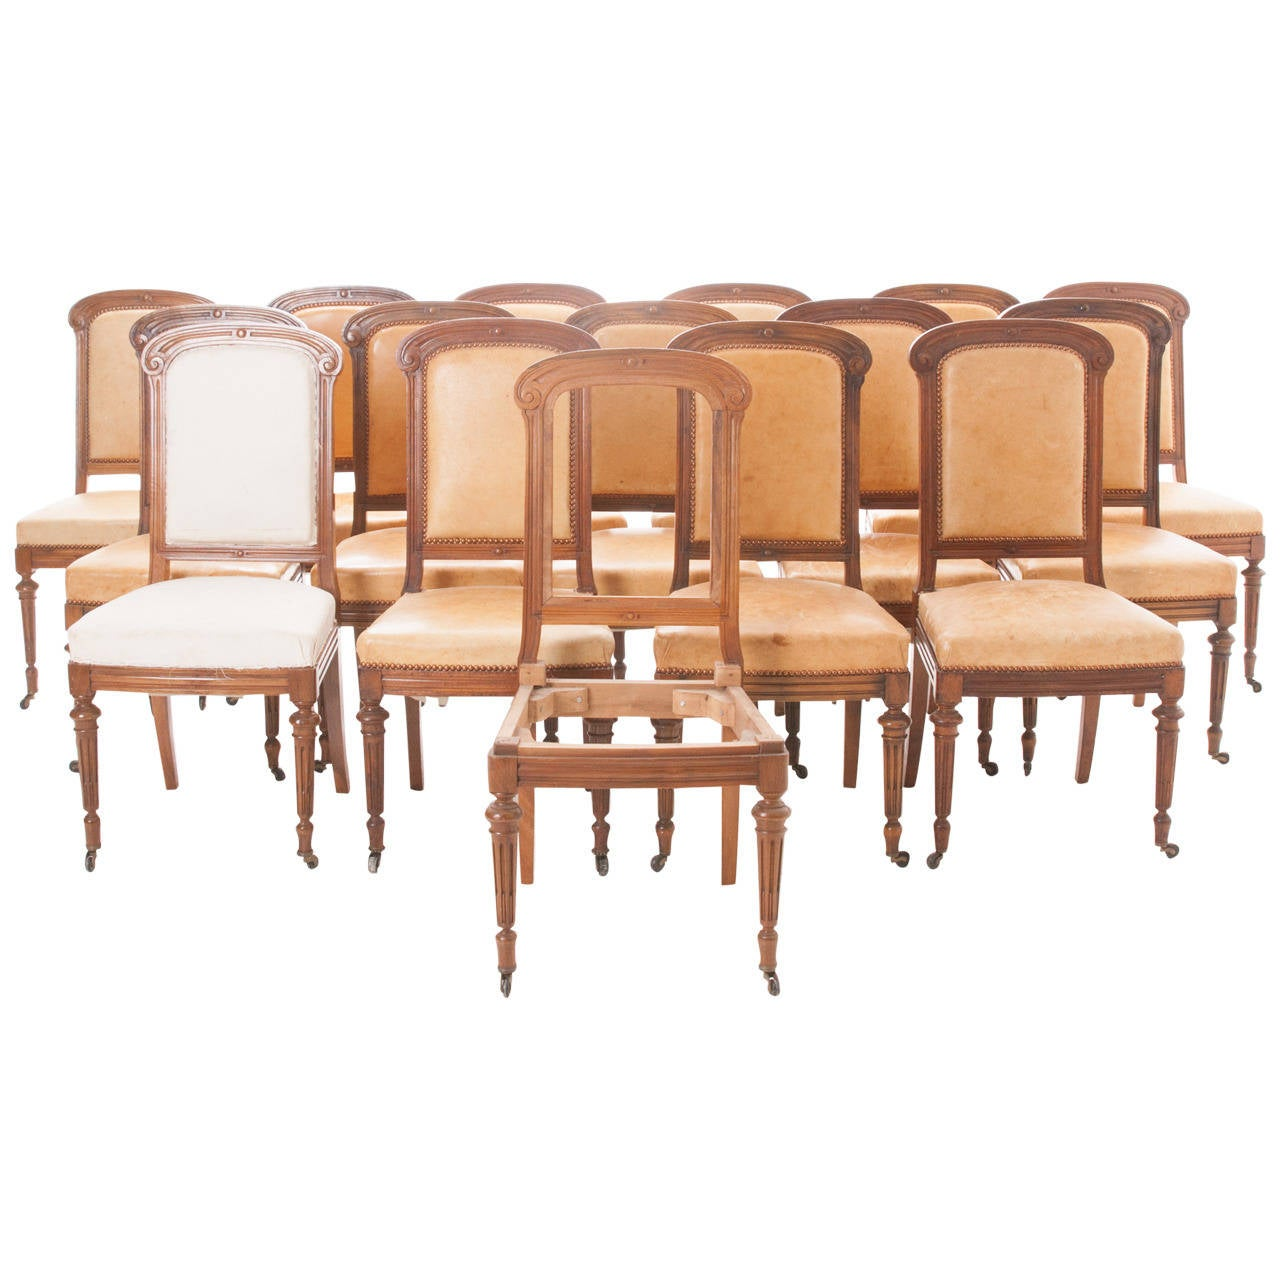 Set of 16 french 19th century walnut dining chairs at 1stdibs for Dining room tables that seat 16